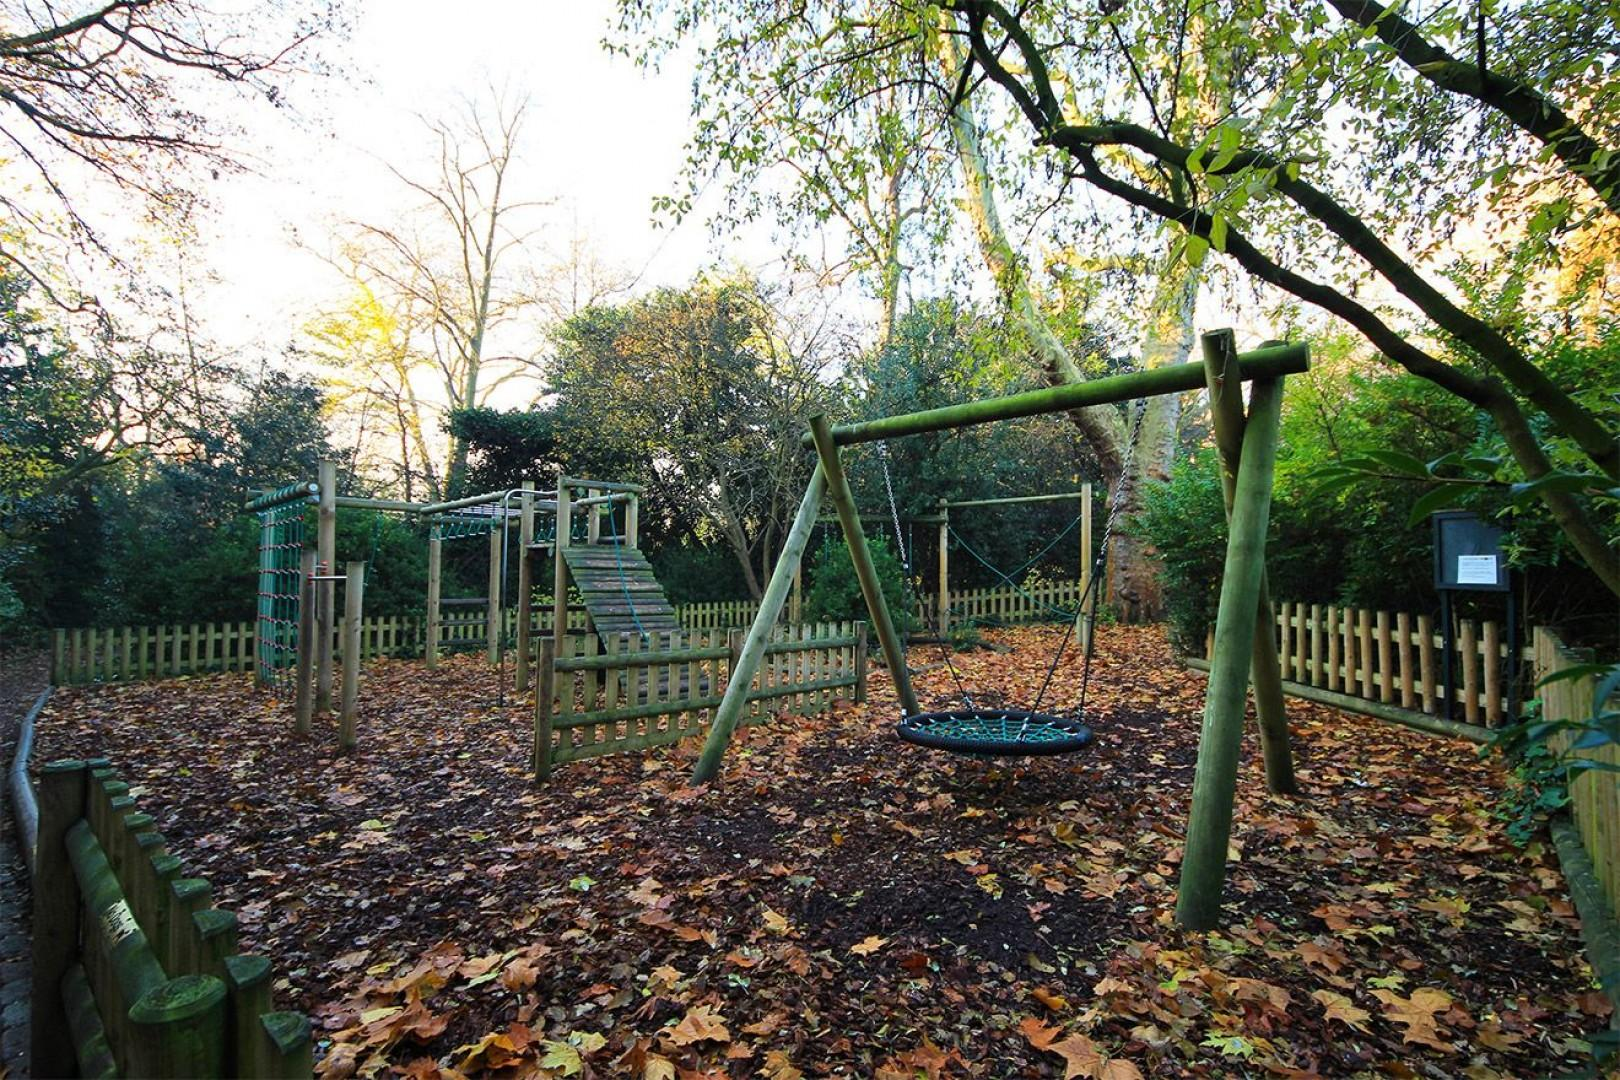 Playground in the local park is perfect for kids!